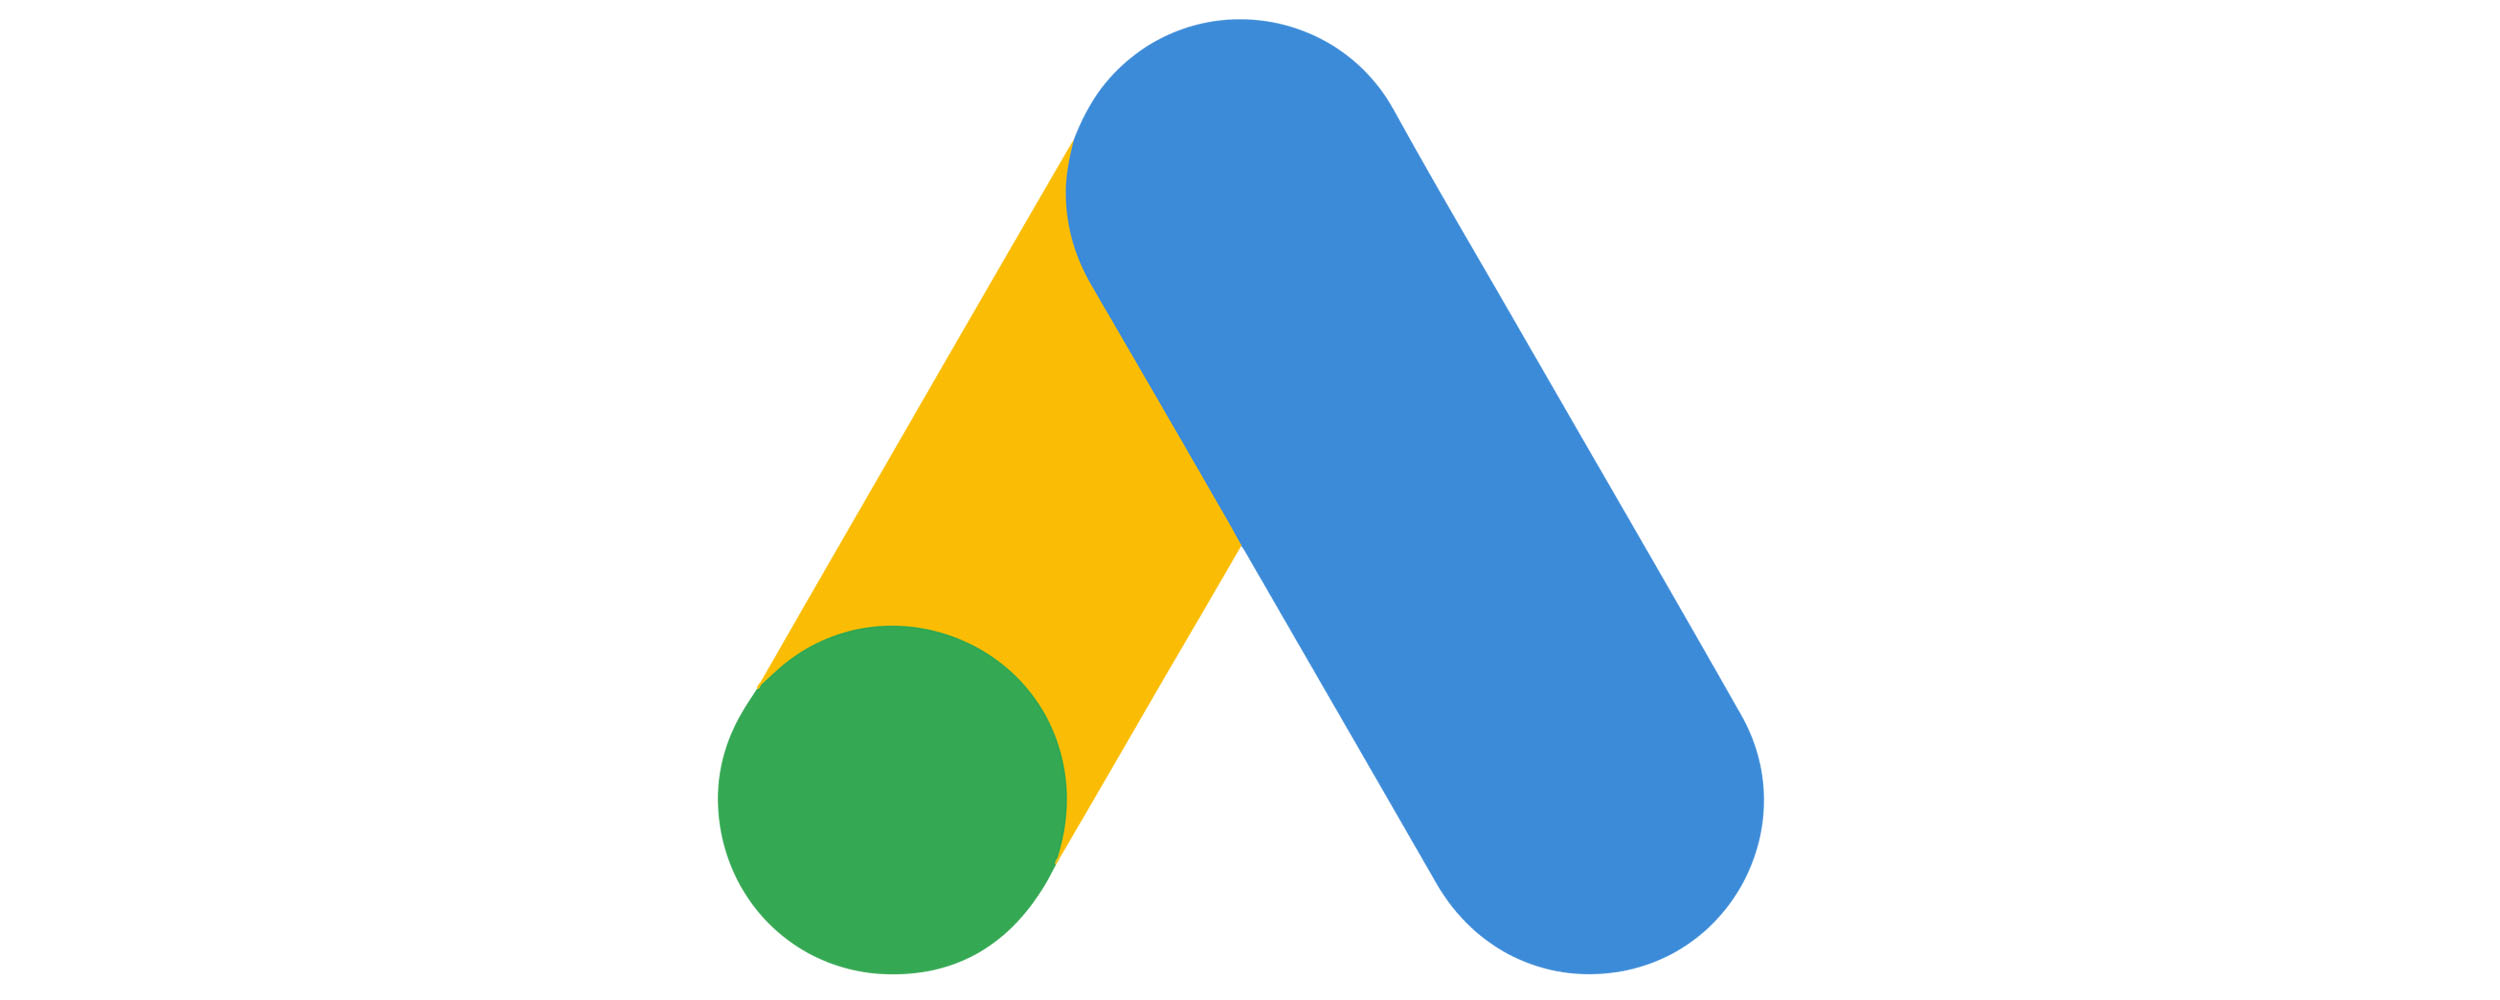 Google Ads (Google Adwords) Management Page Feature Picture 2.jpg